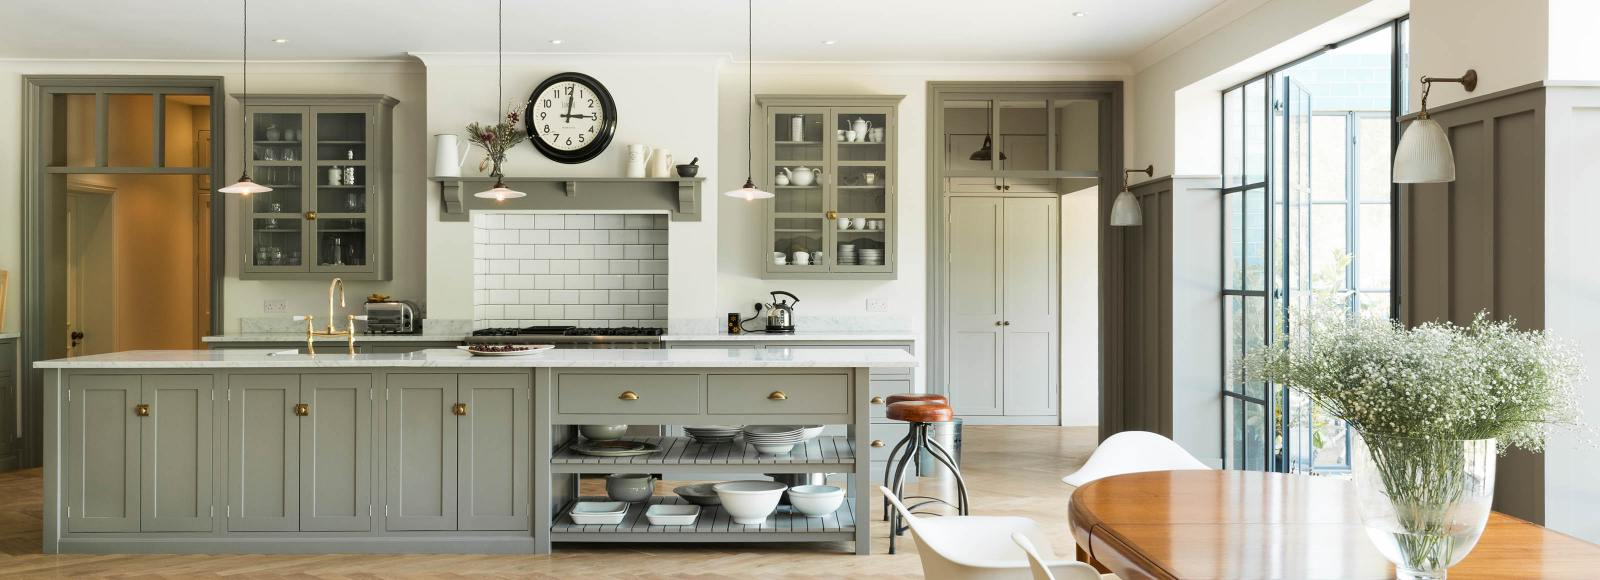 bespoke kitchen designs devol kitchens shaker kitchens classic bespoke kitchens 1591